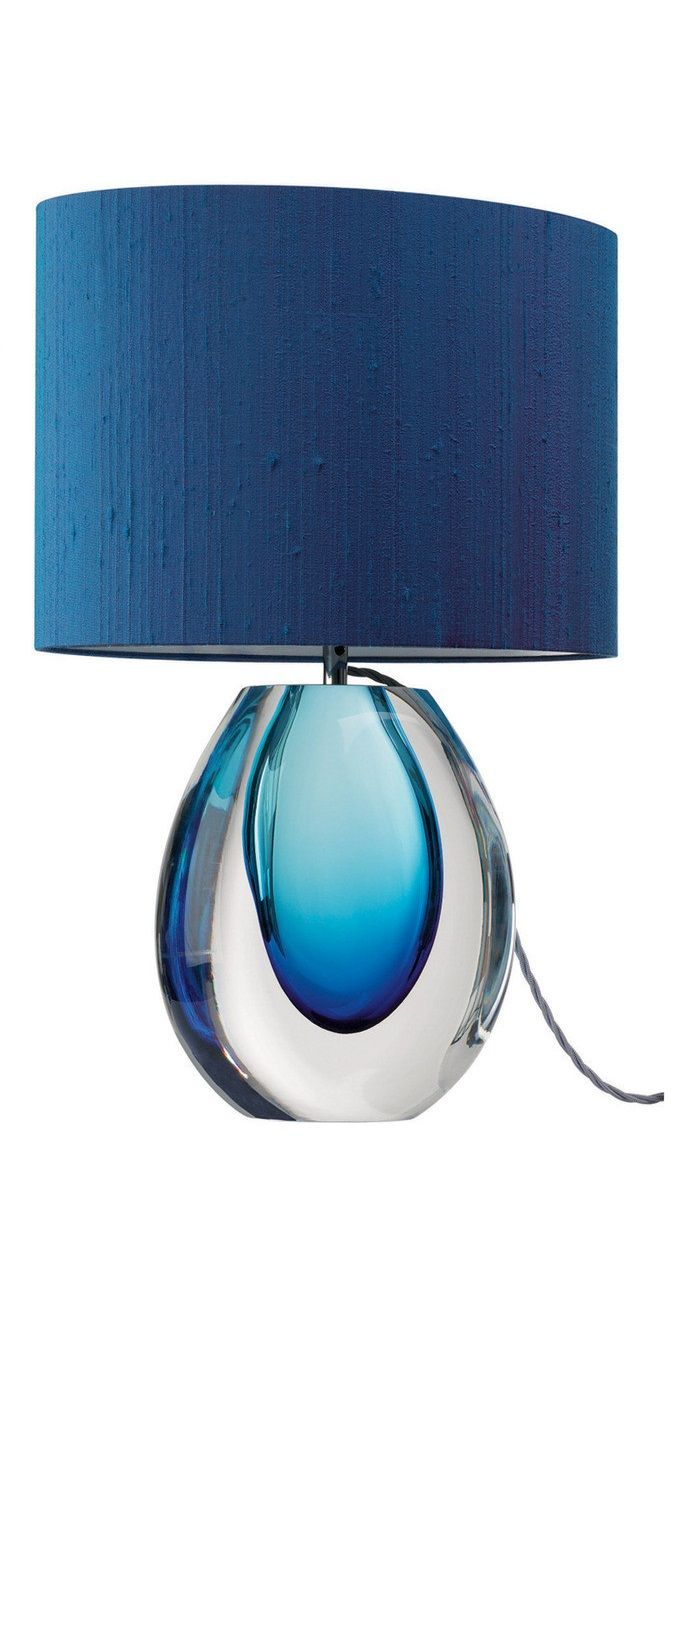 Tall Table Lamps For Bedroom 17 Best Ideas About Bedroom Table Lamps On Pinterest Bedroom